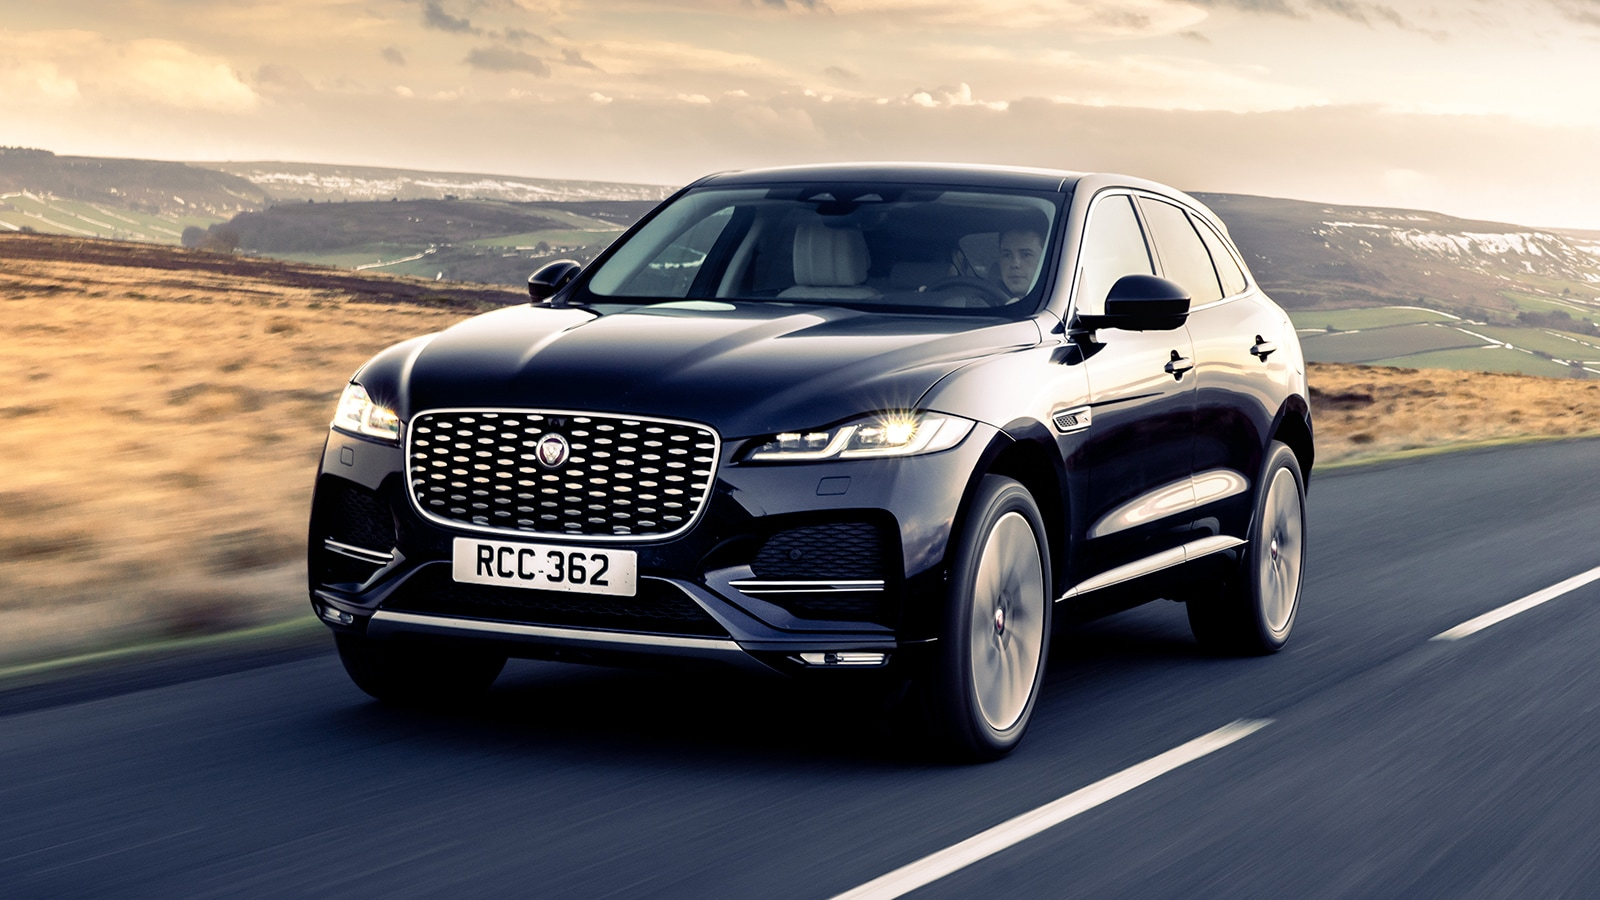 The latest F-Pace from Jaguar gets noticeable visual changes on the outside.